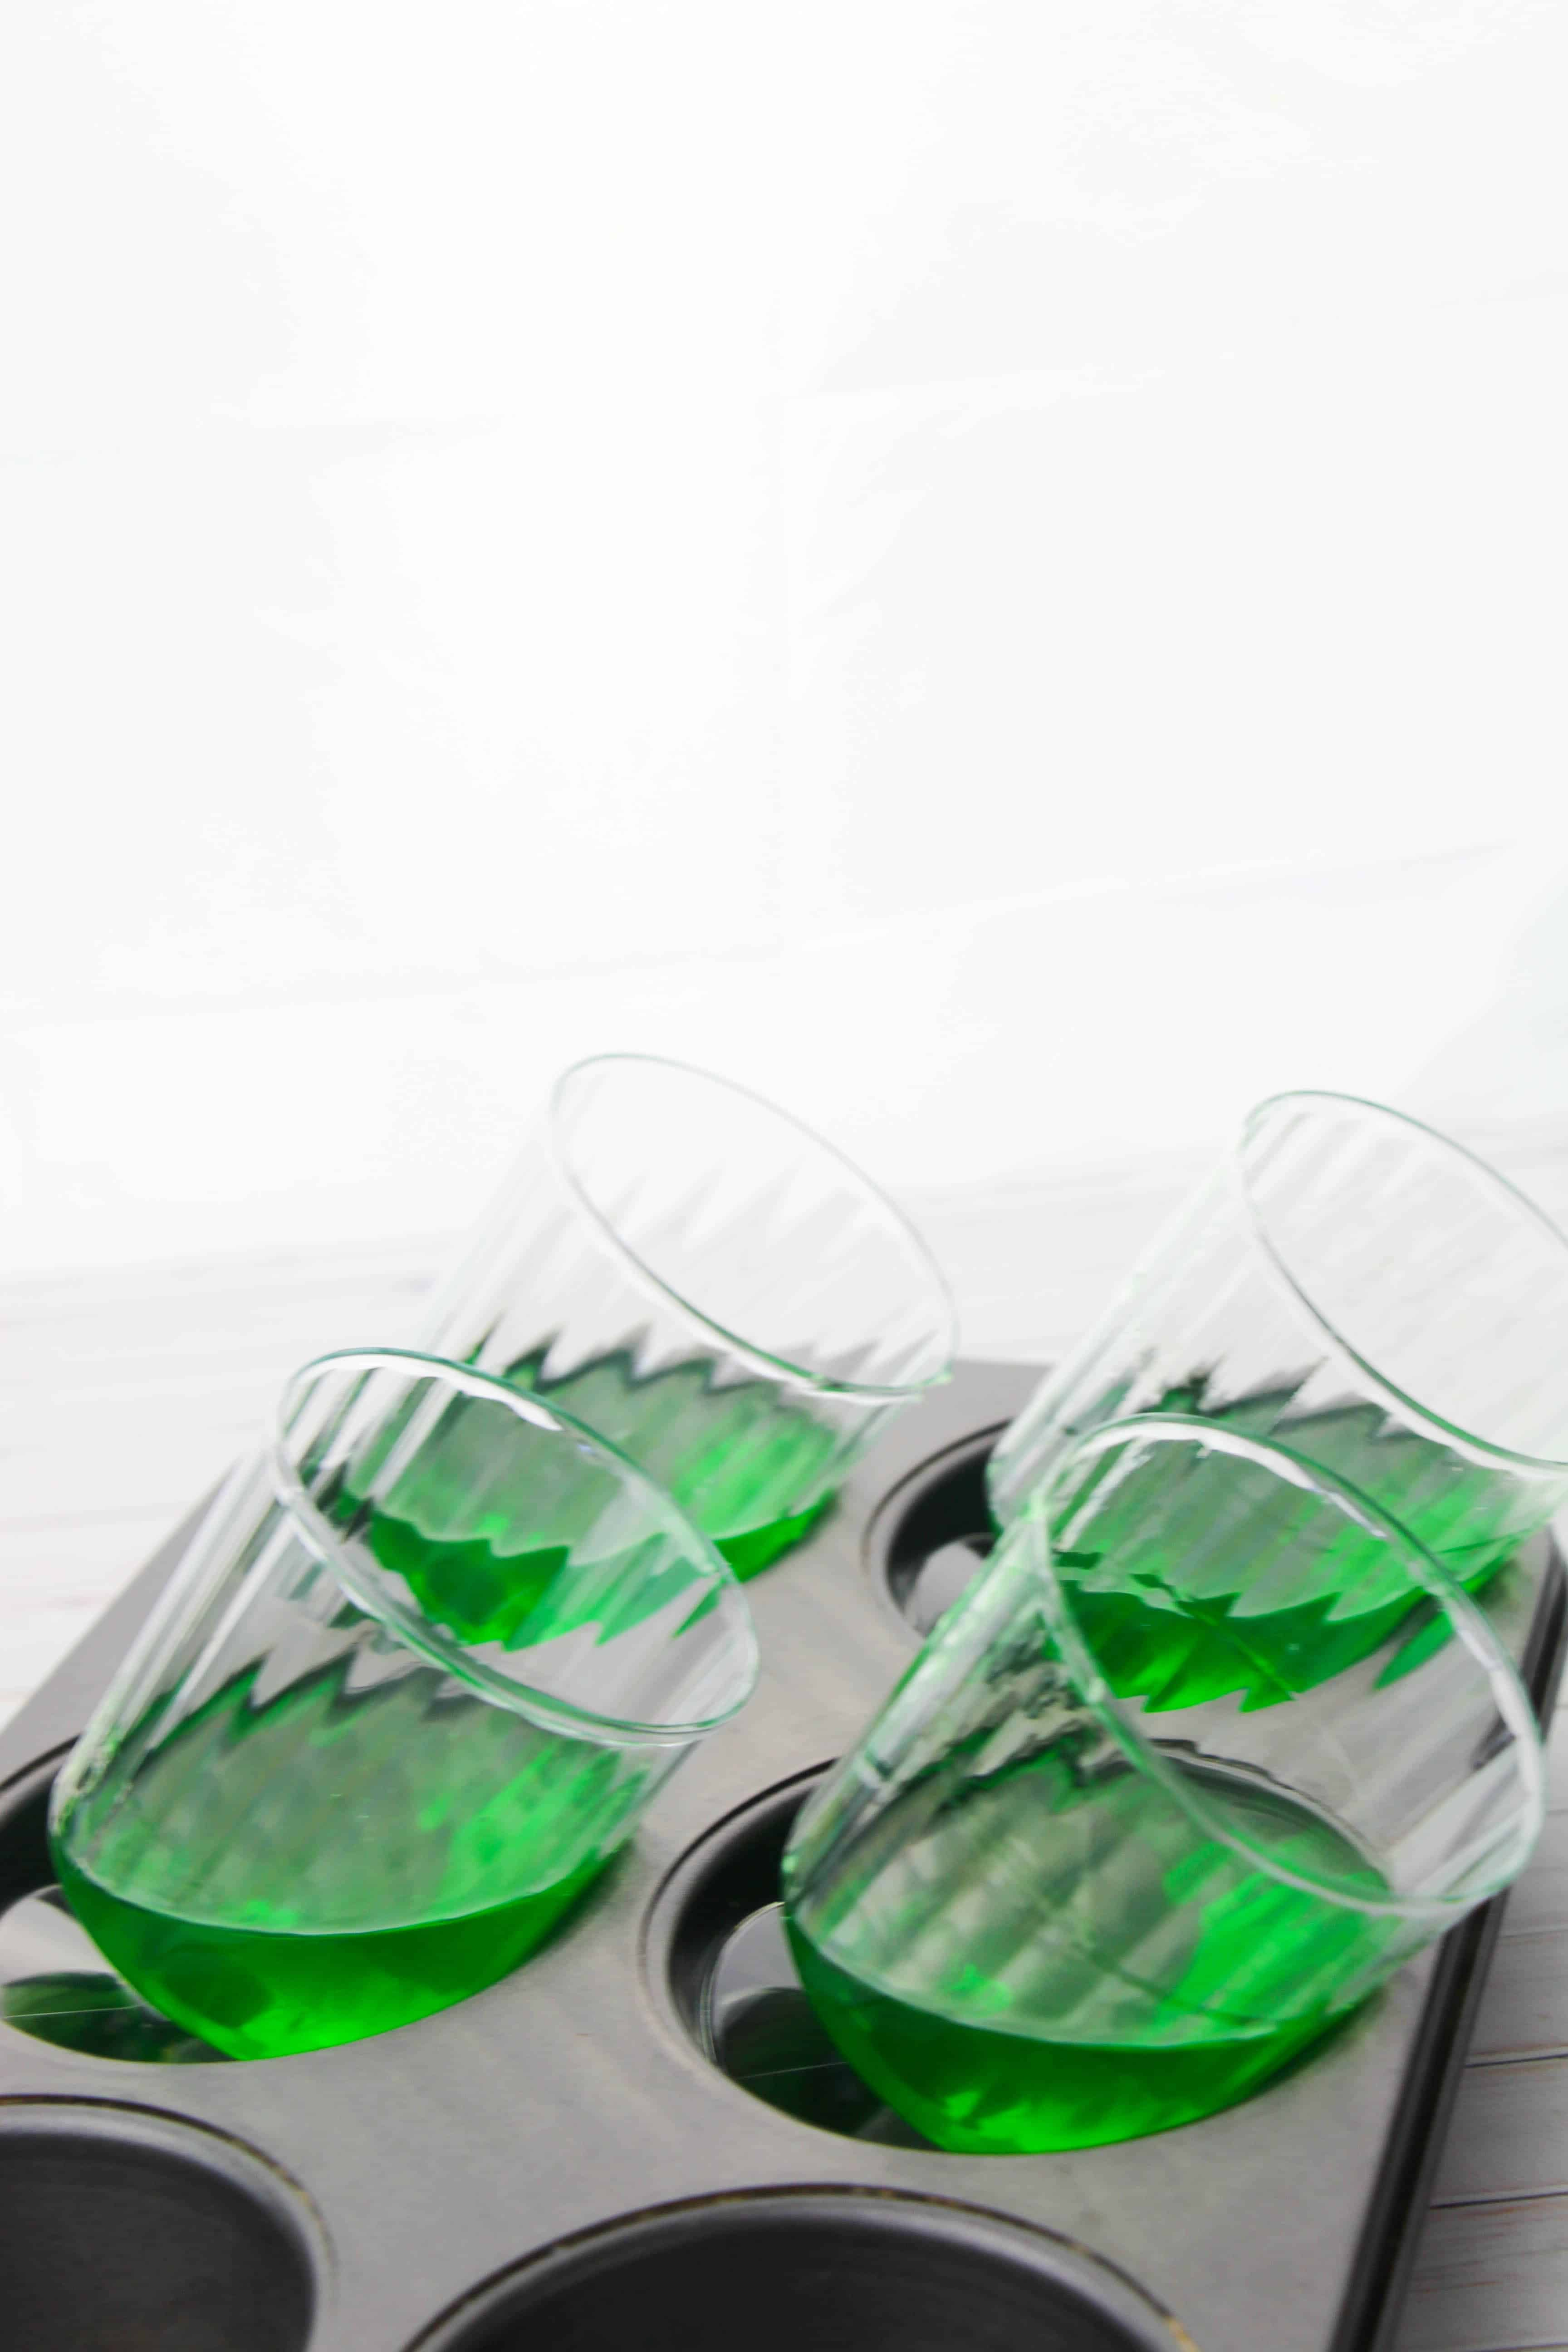 A photo of the glasses tipped to the side in a muffin pan with green jello setting up in them.